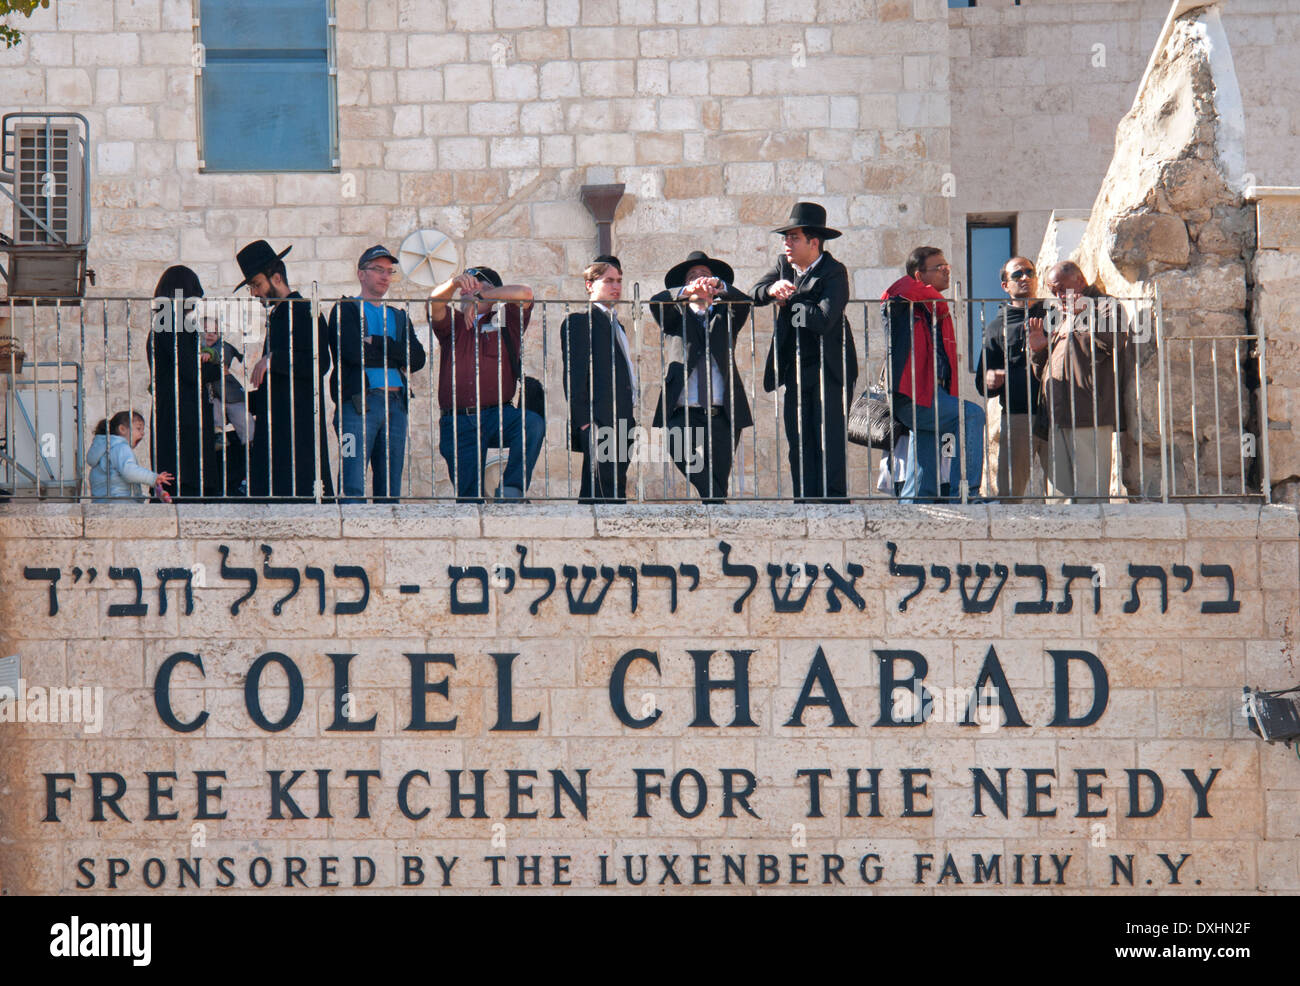 Chabad Stock Photos & Chabad Stock Images - Alamy